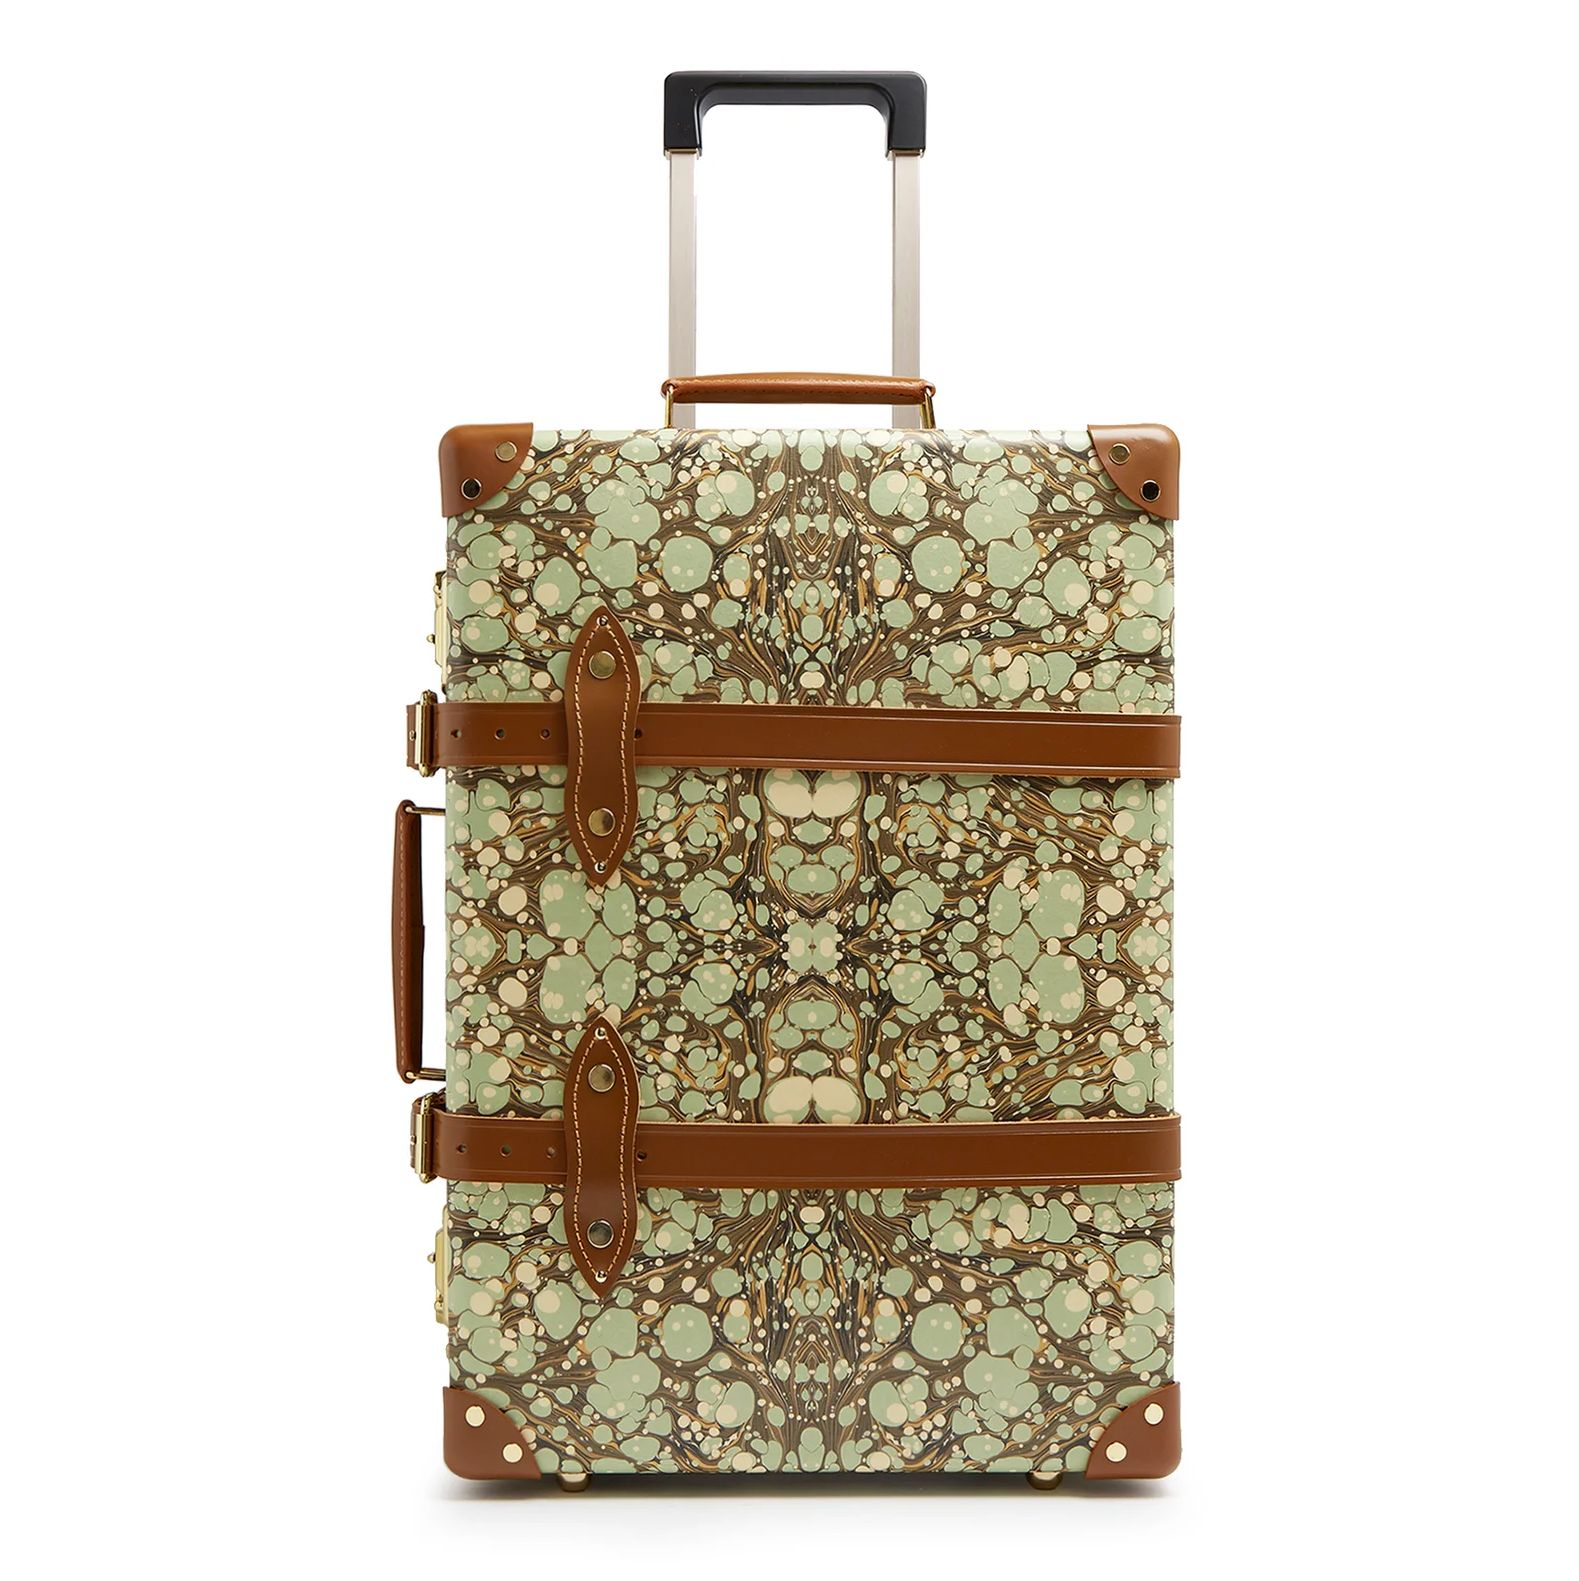 Best weekend bags: Globe-Trotter exclusive carry-on